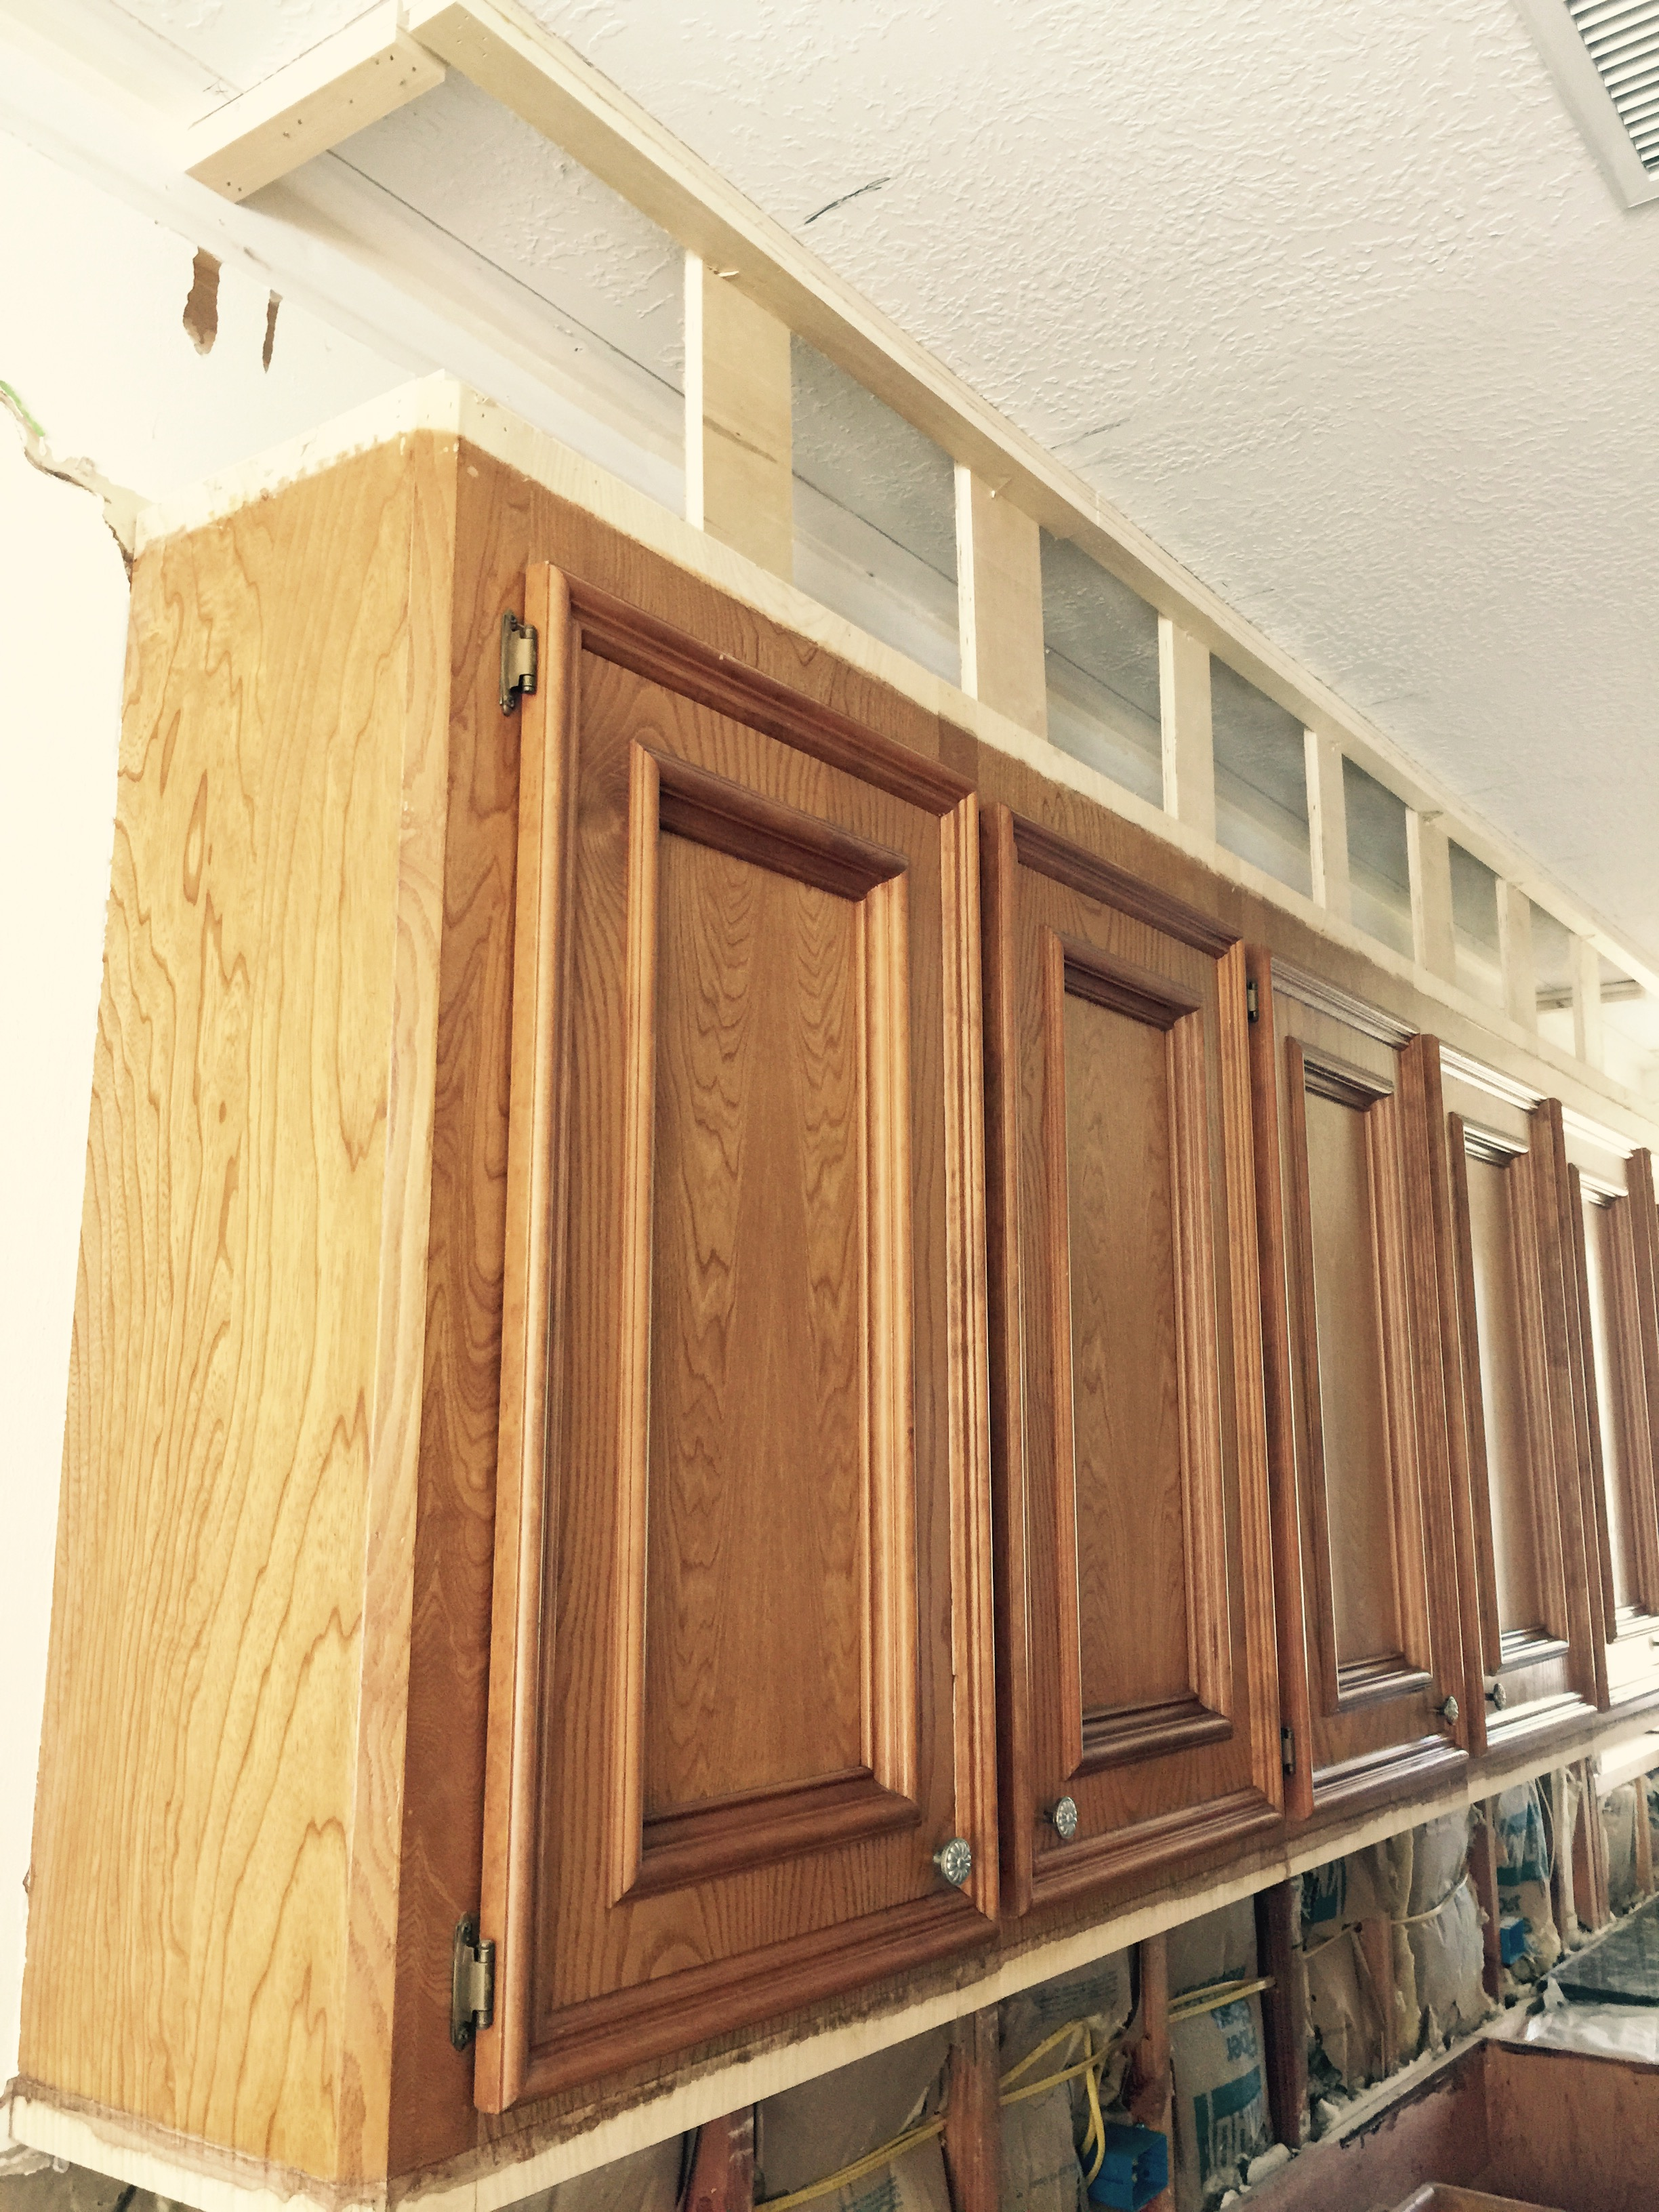 3 Cabinet Remodeling Details That Really Transform Your